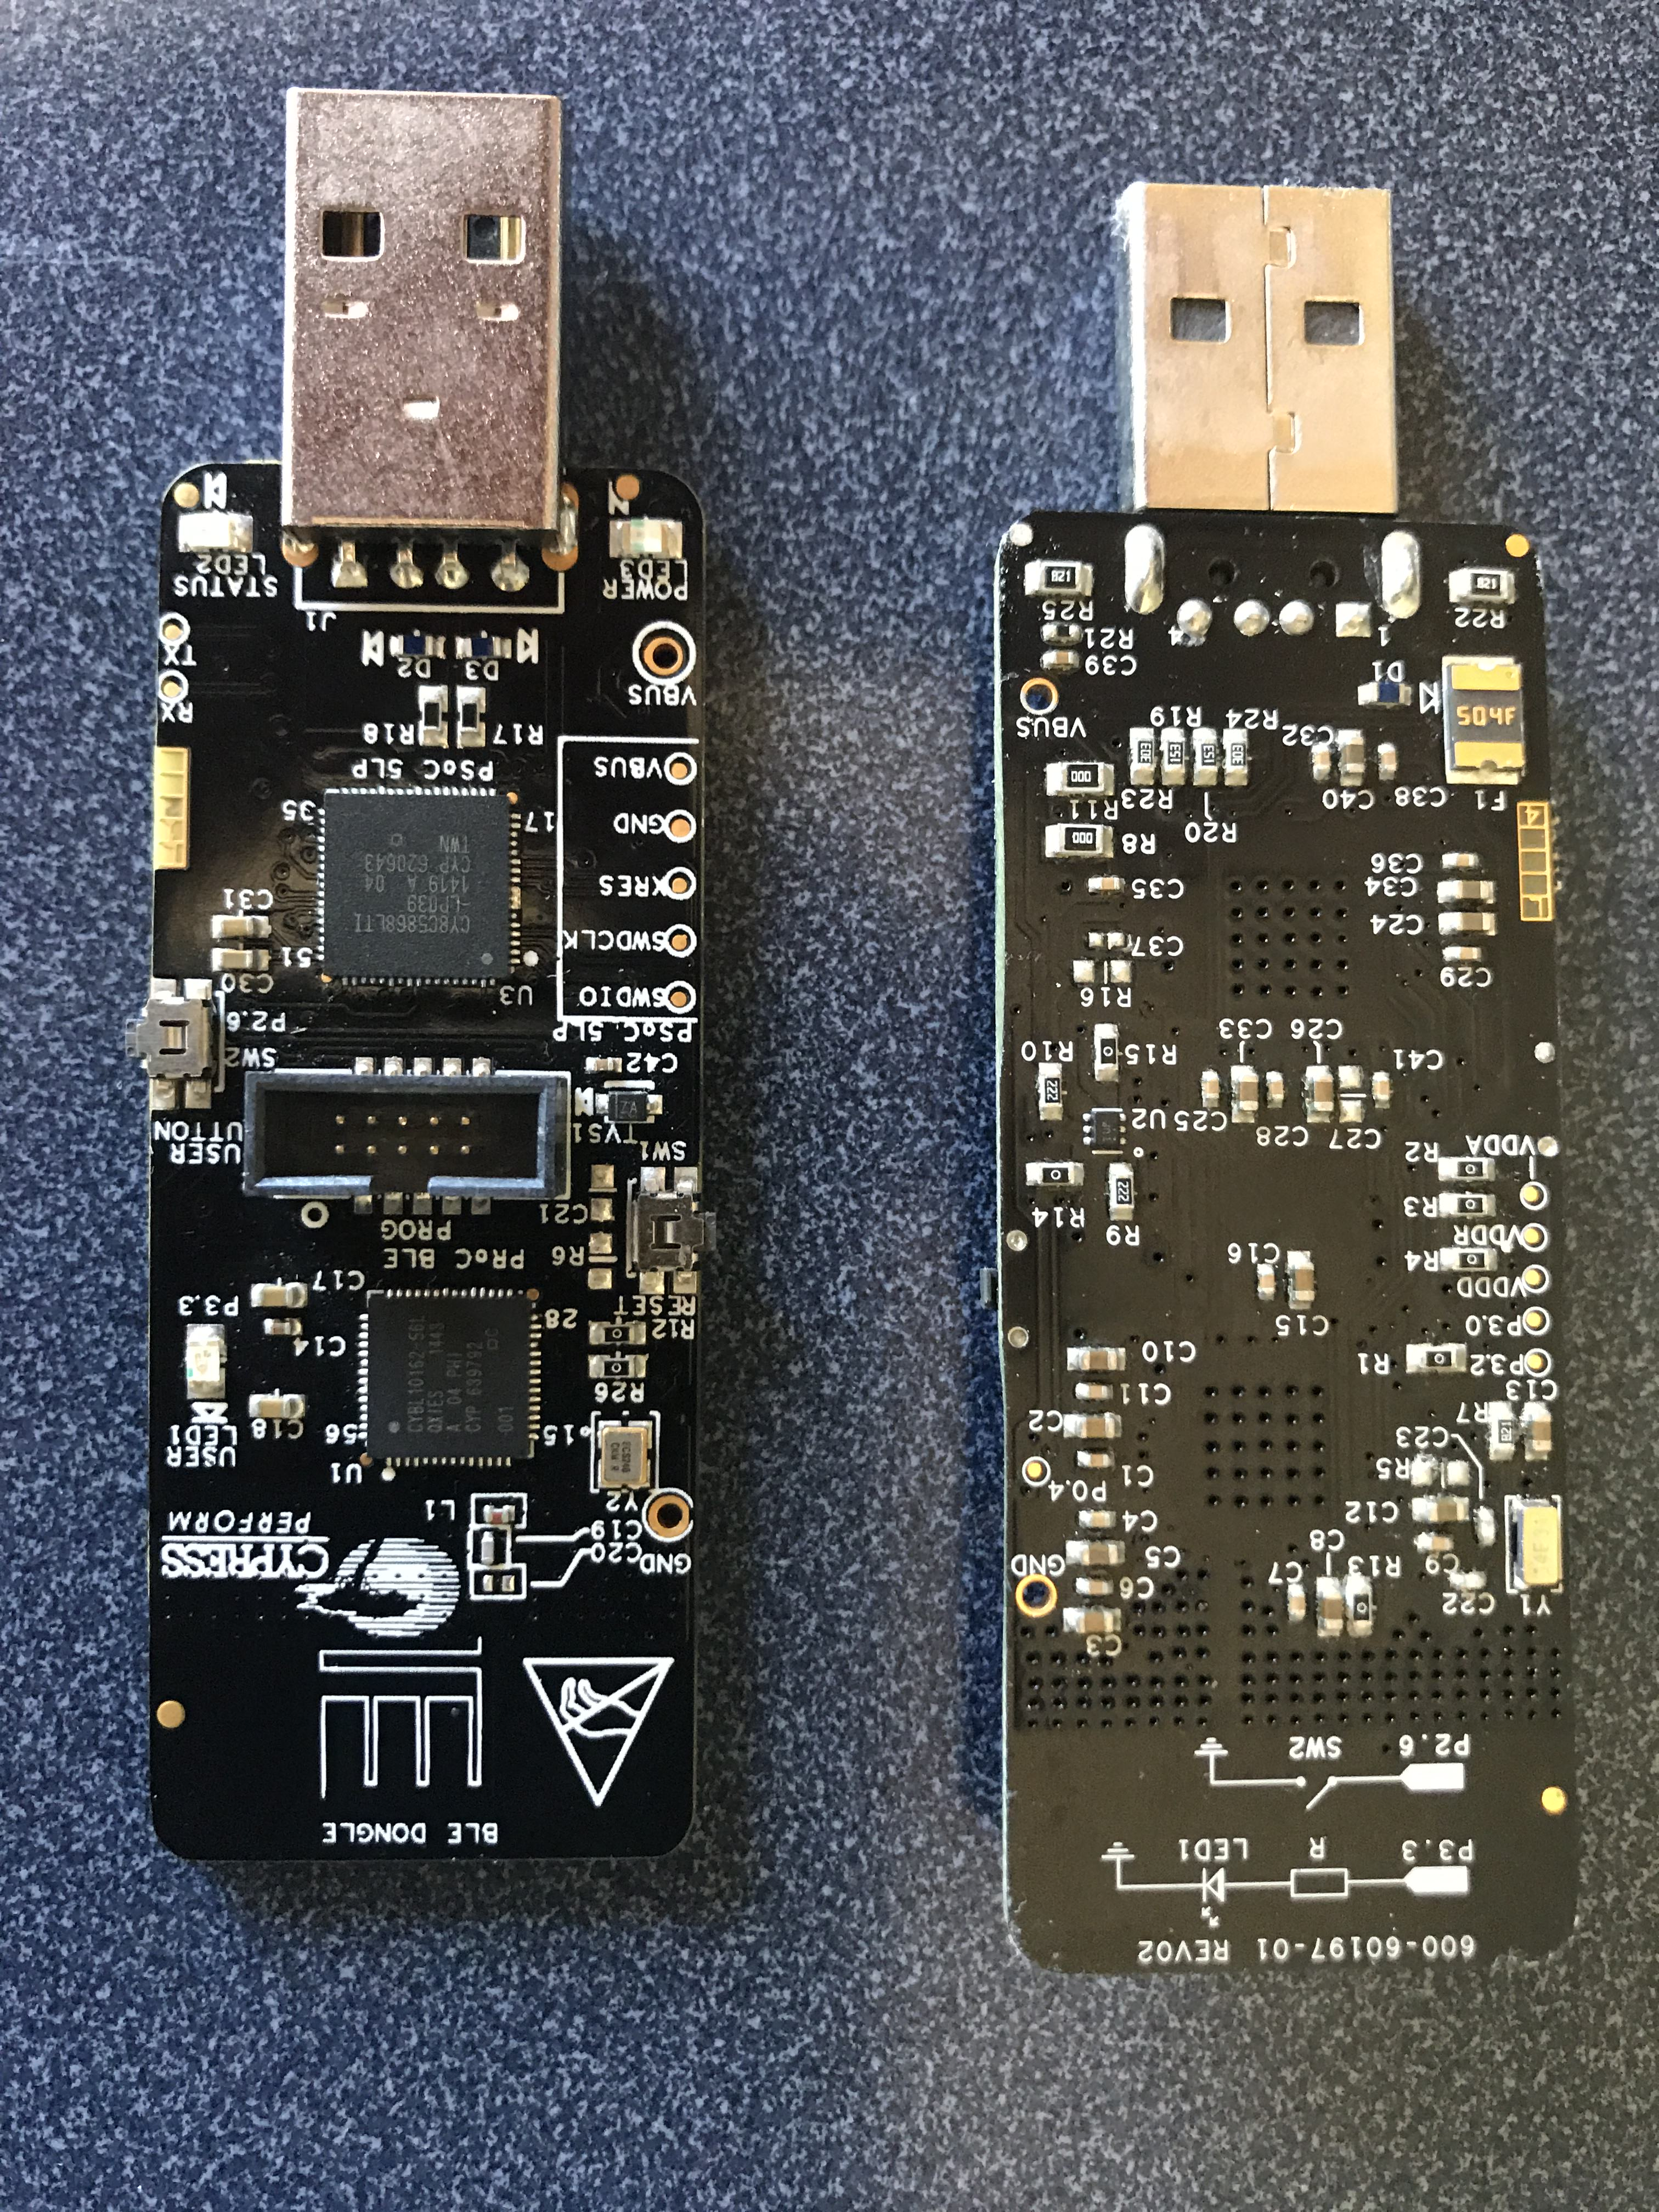 PSoC4 BLE Central - Using the CySmart Dongle - IoT Expert